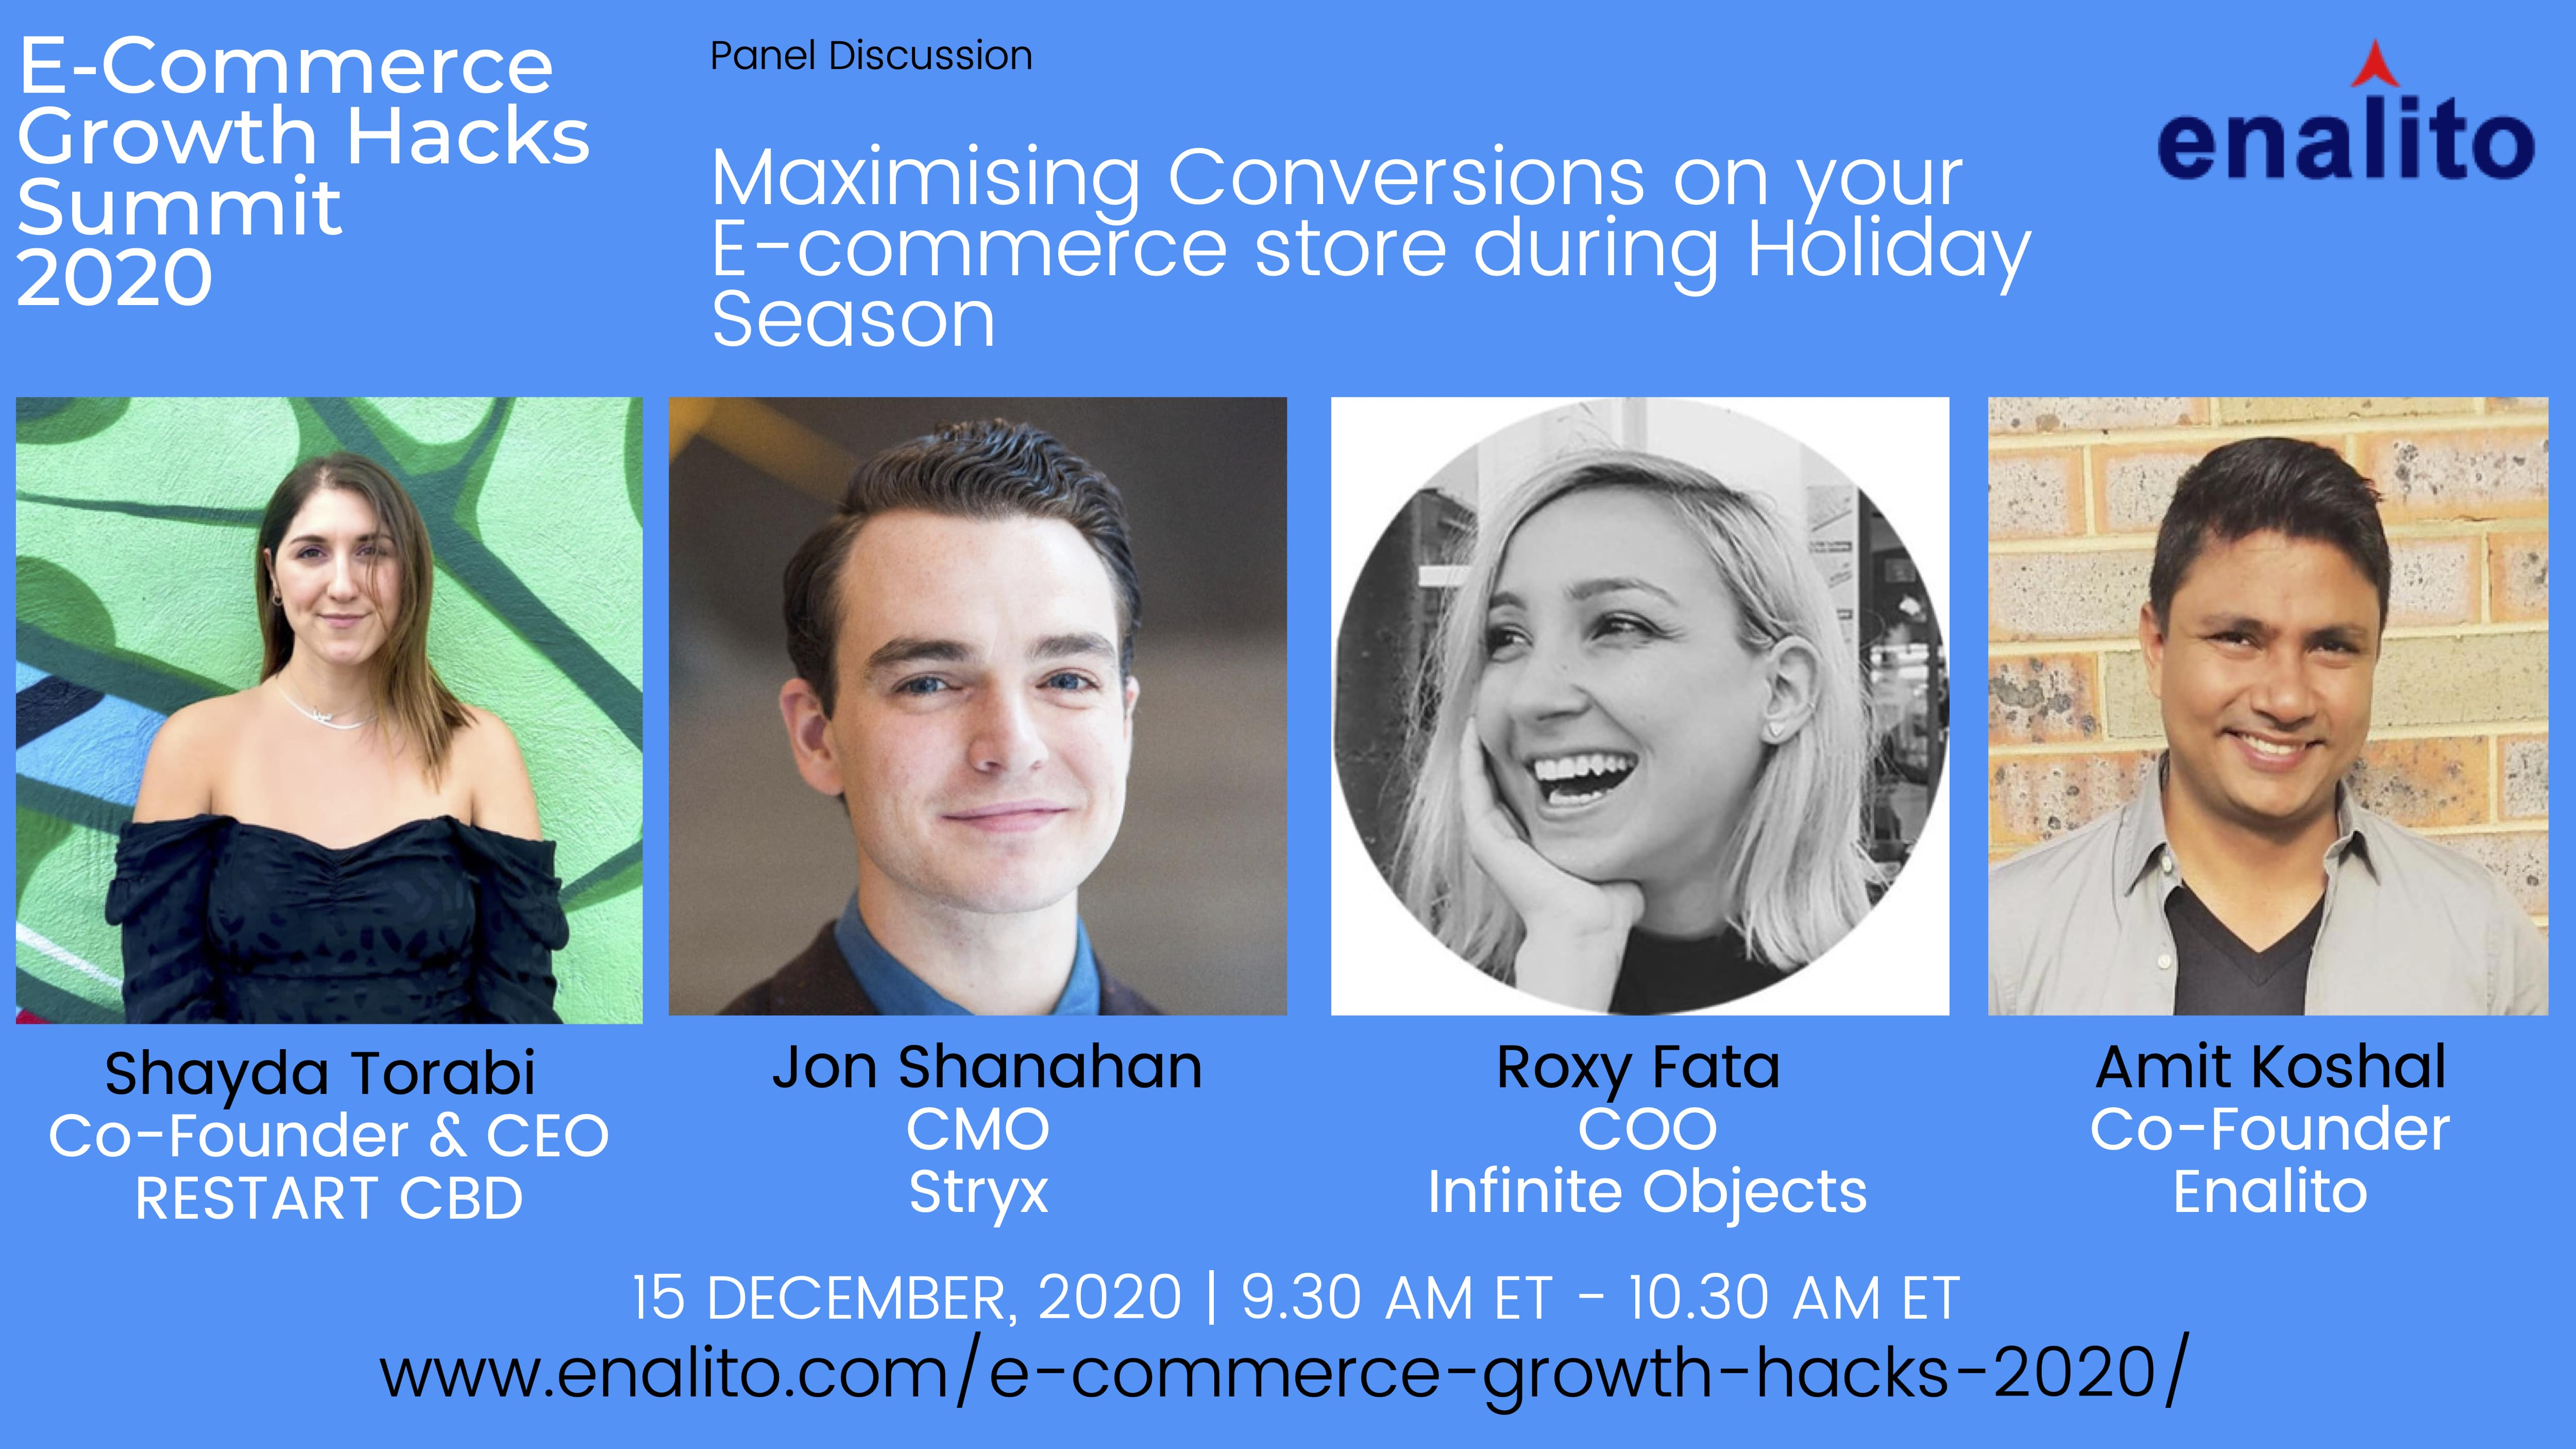 Maximising store conversions on your store during the Holiday Season